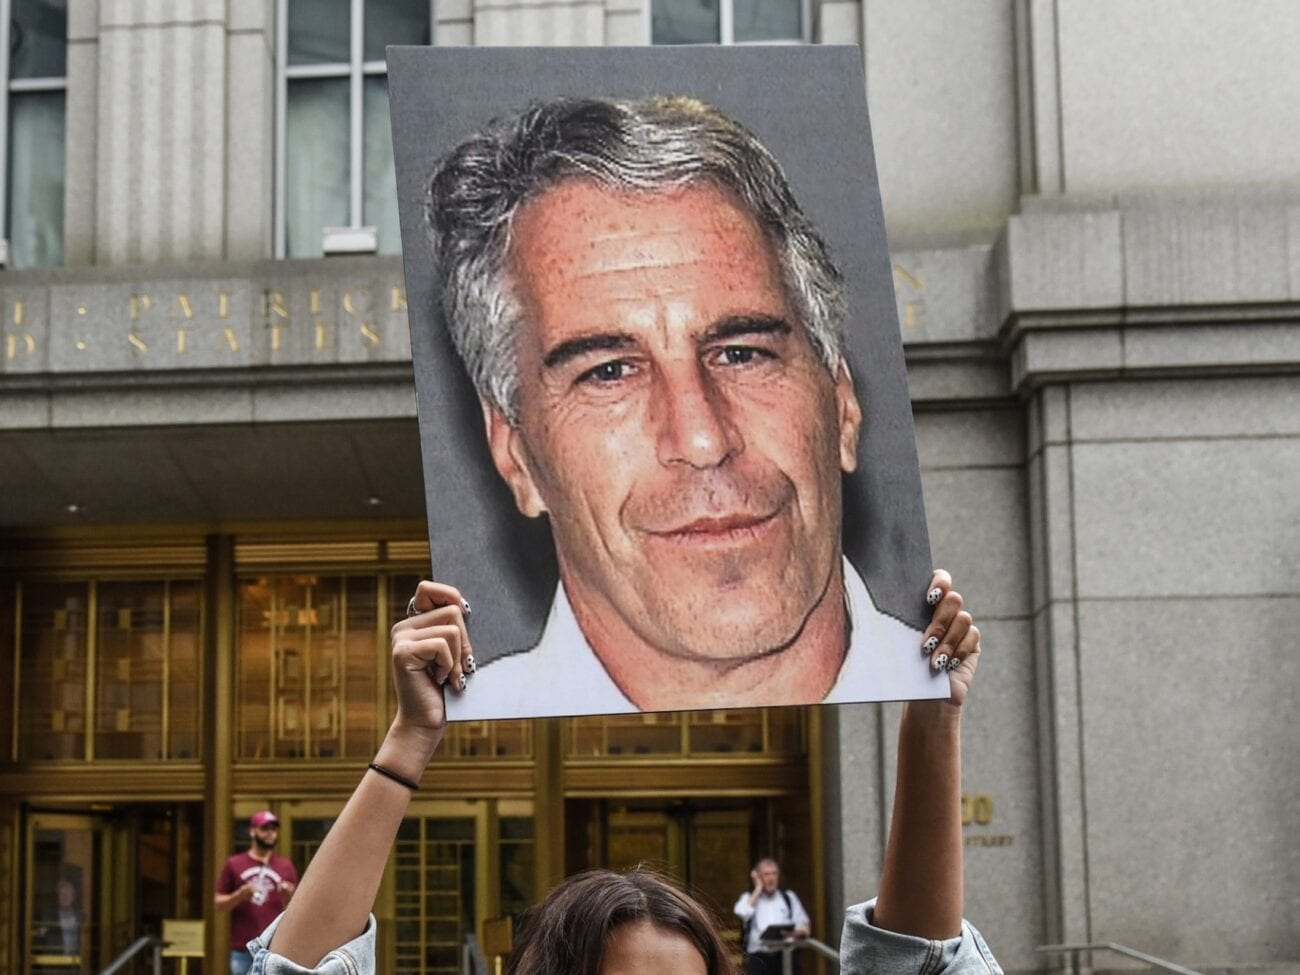 Jeffrey Epstein's death on August 10, 2019 became a case that was highly scrutinized by the public. Here's what are the theories we have uncovered.